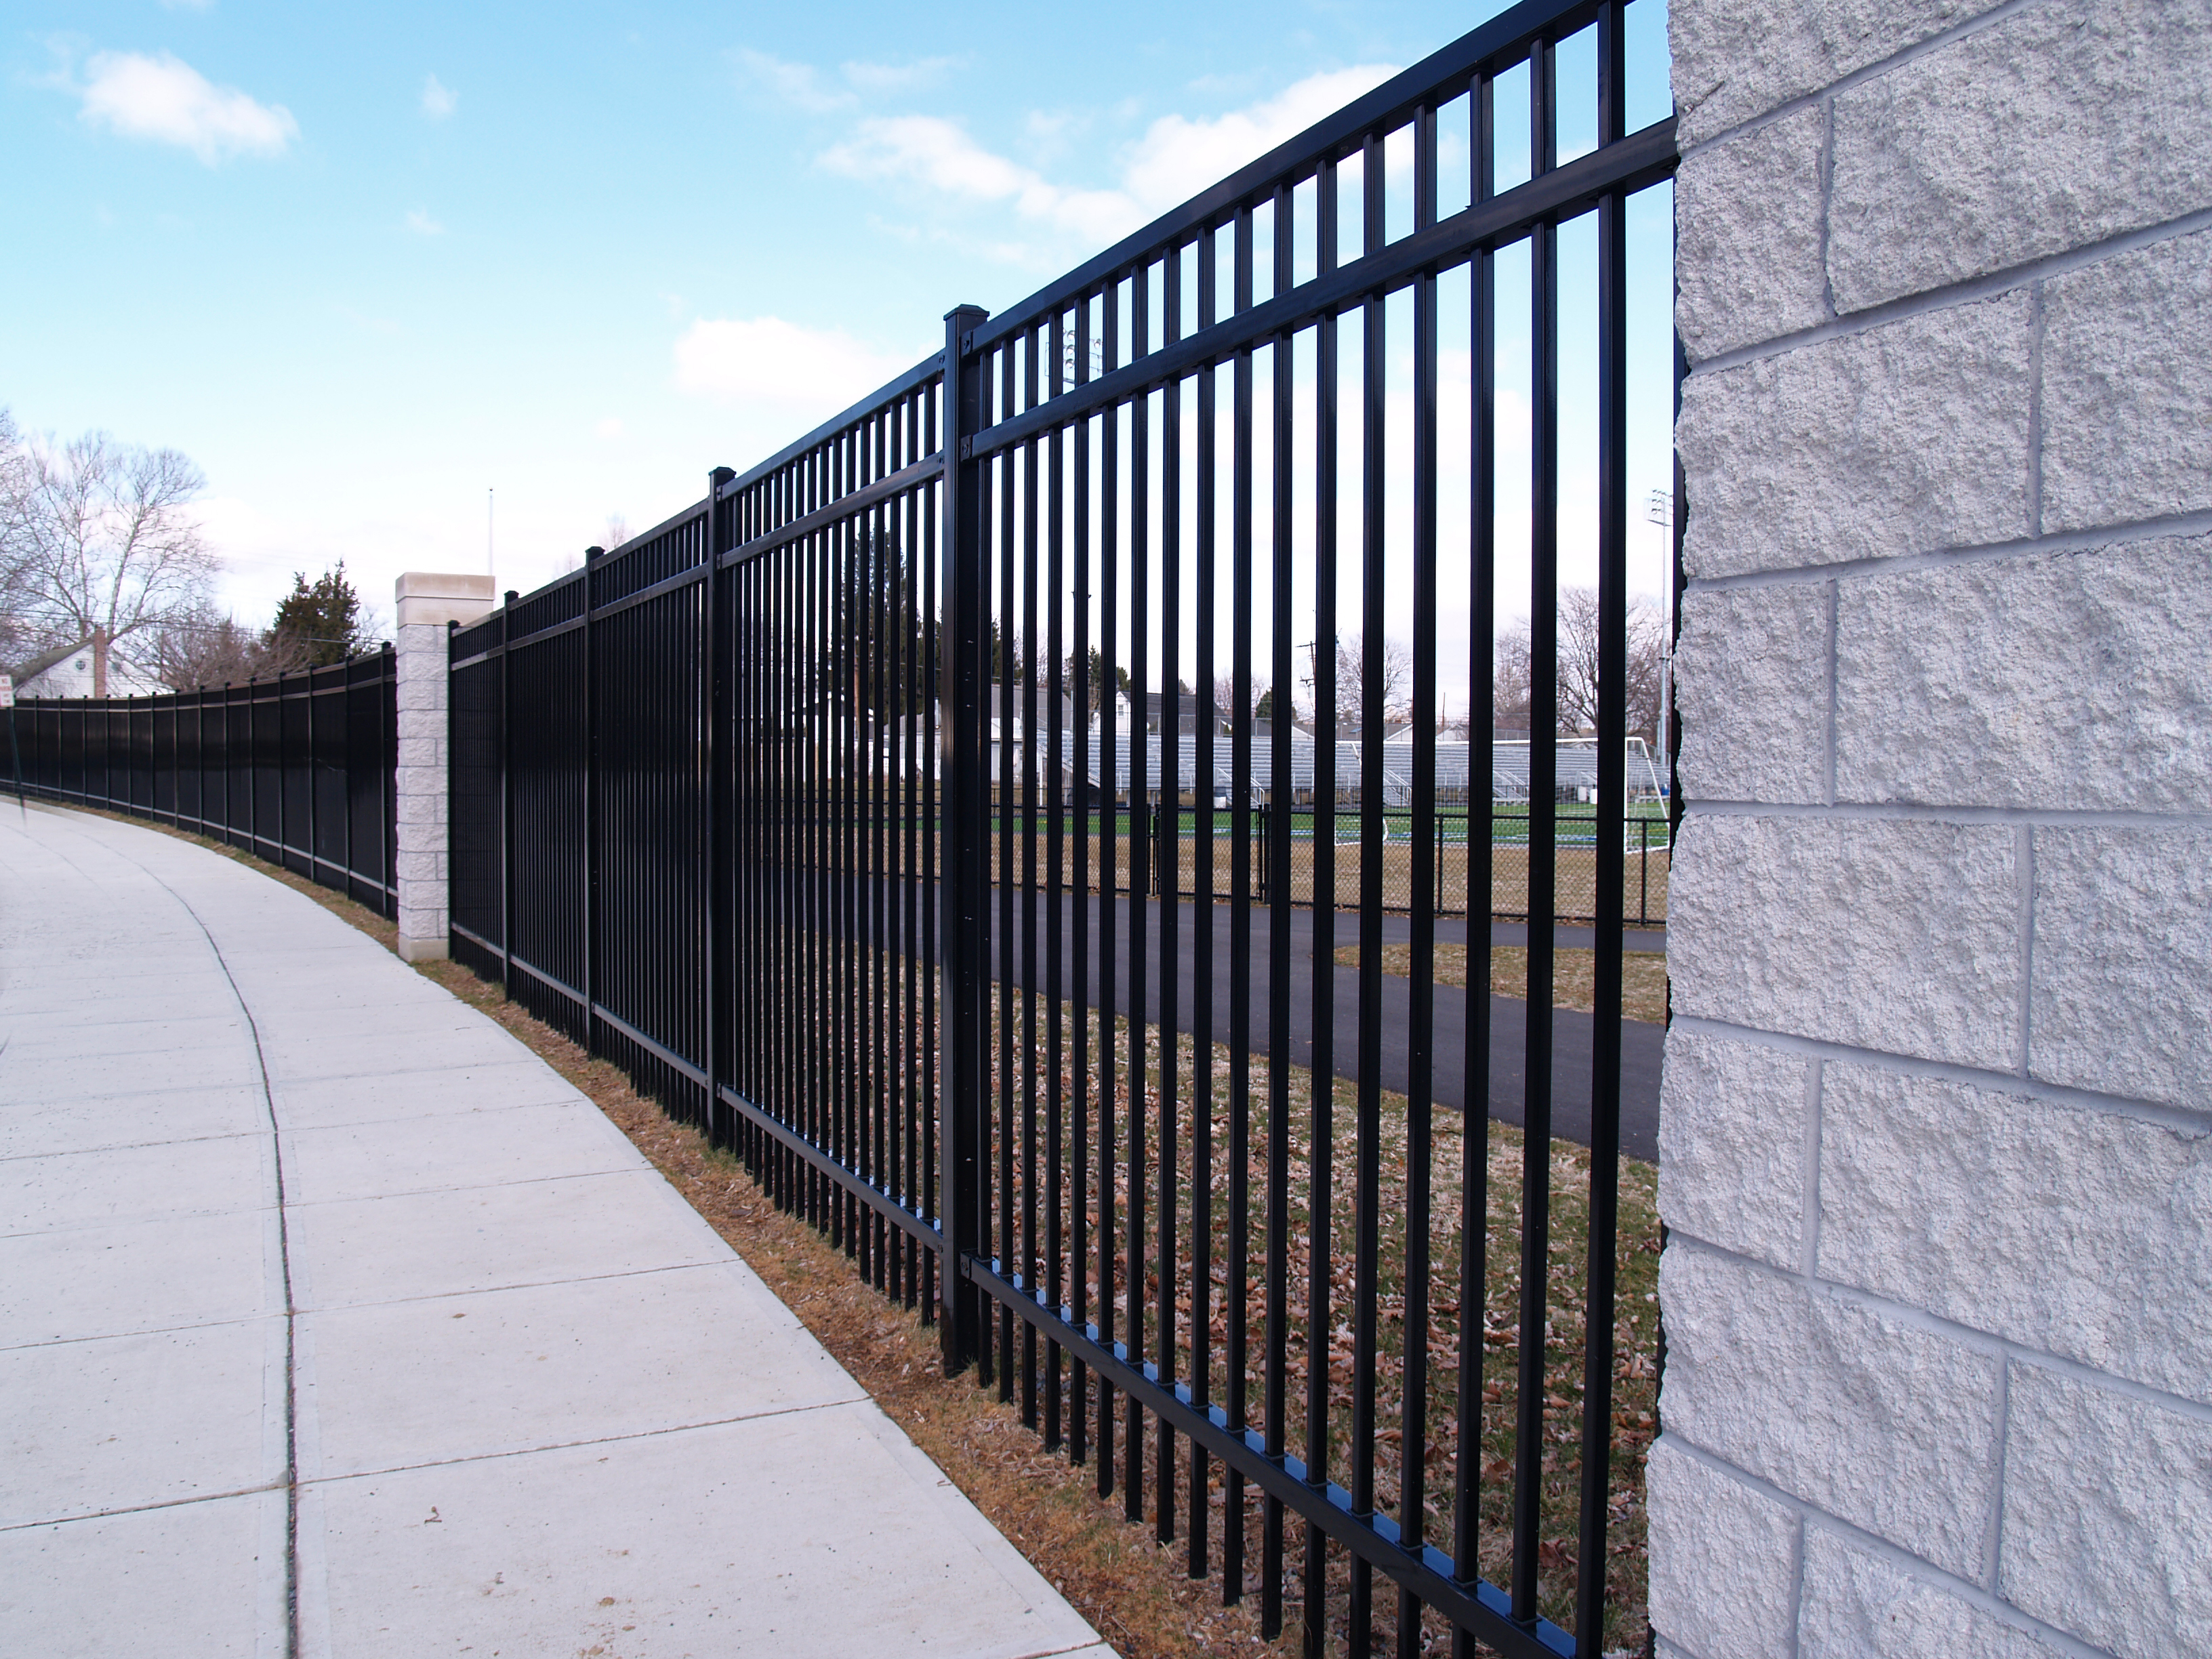 Tall Curving Black Fence By A Sidewalk.jpg